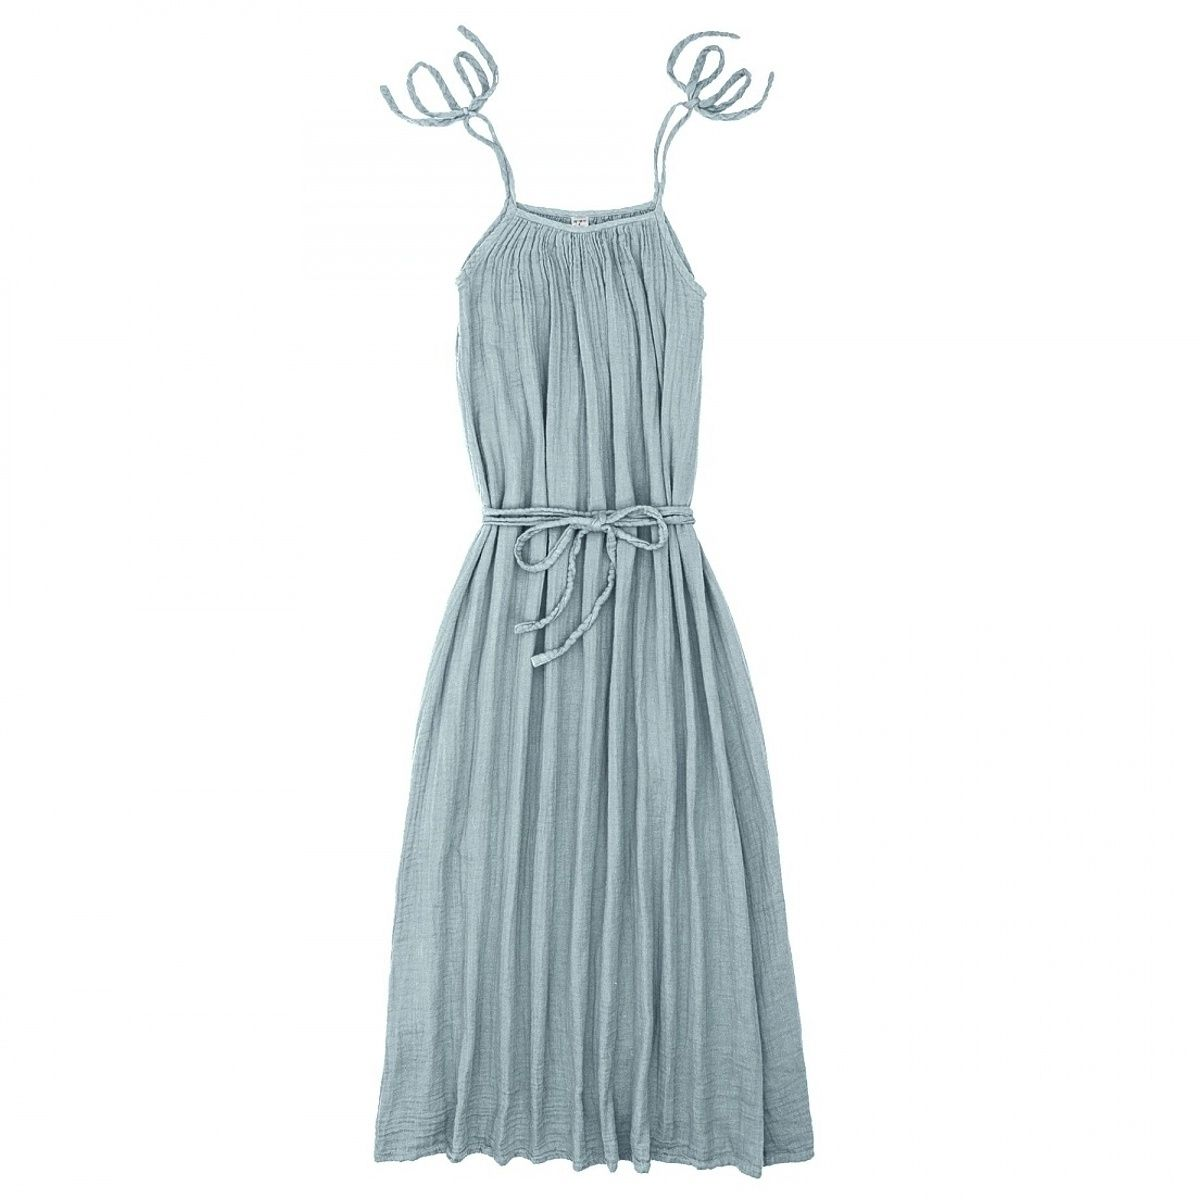 Numero 74 - Mia Long Dress Mum sweet blue - 1